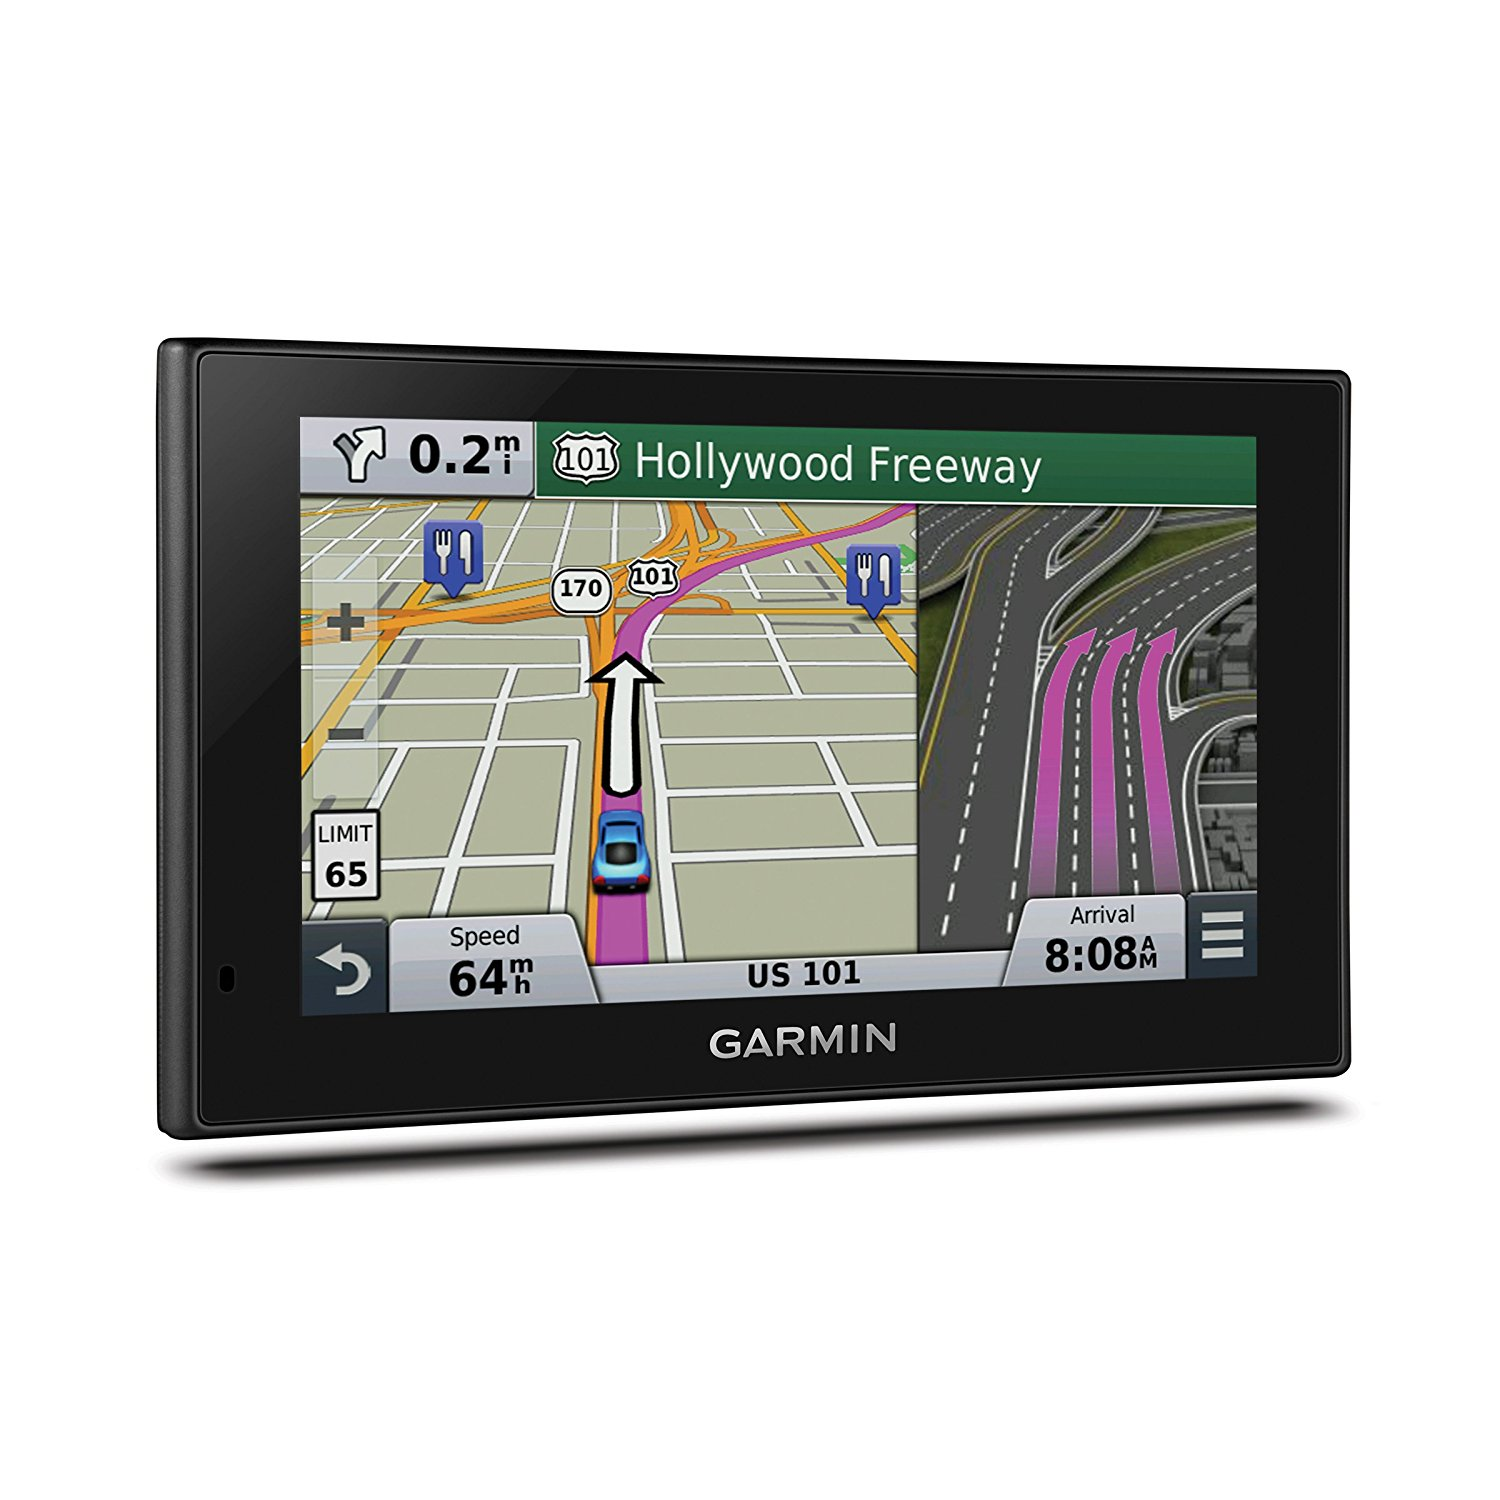 Garmin Nuvi Update >> Garmin Nuvi 2589lmt 5 Travel Assistant With Free Lifetime Maps And